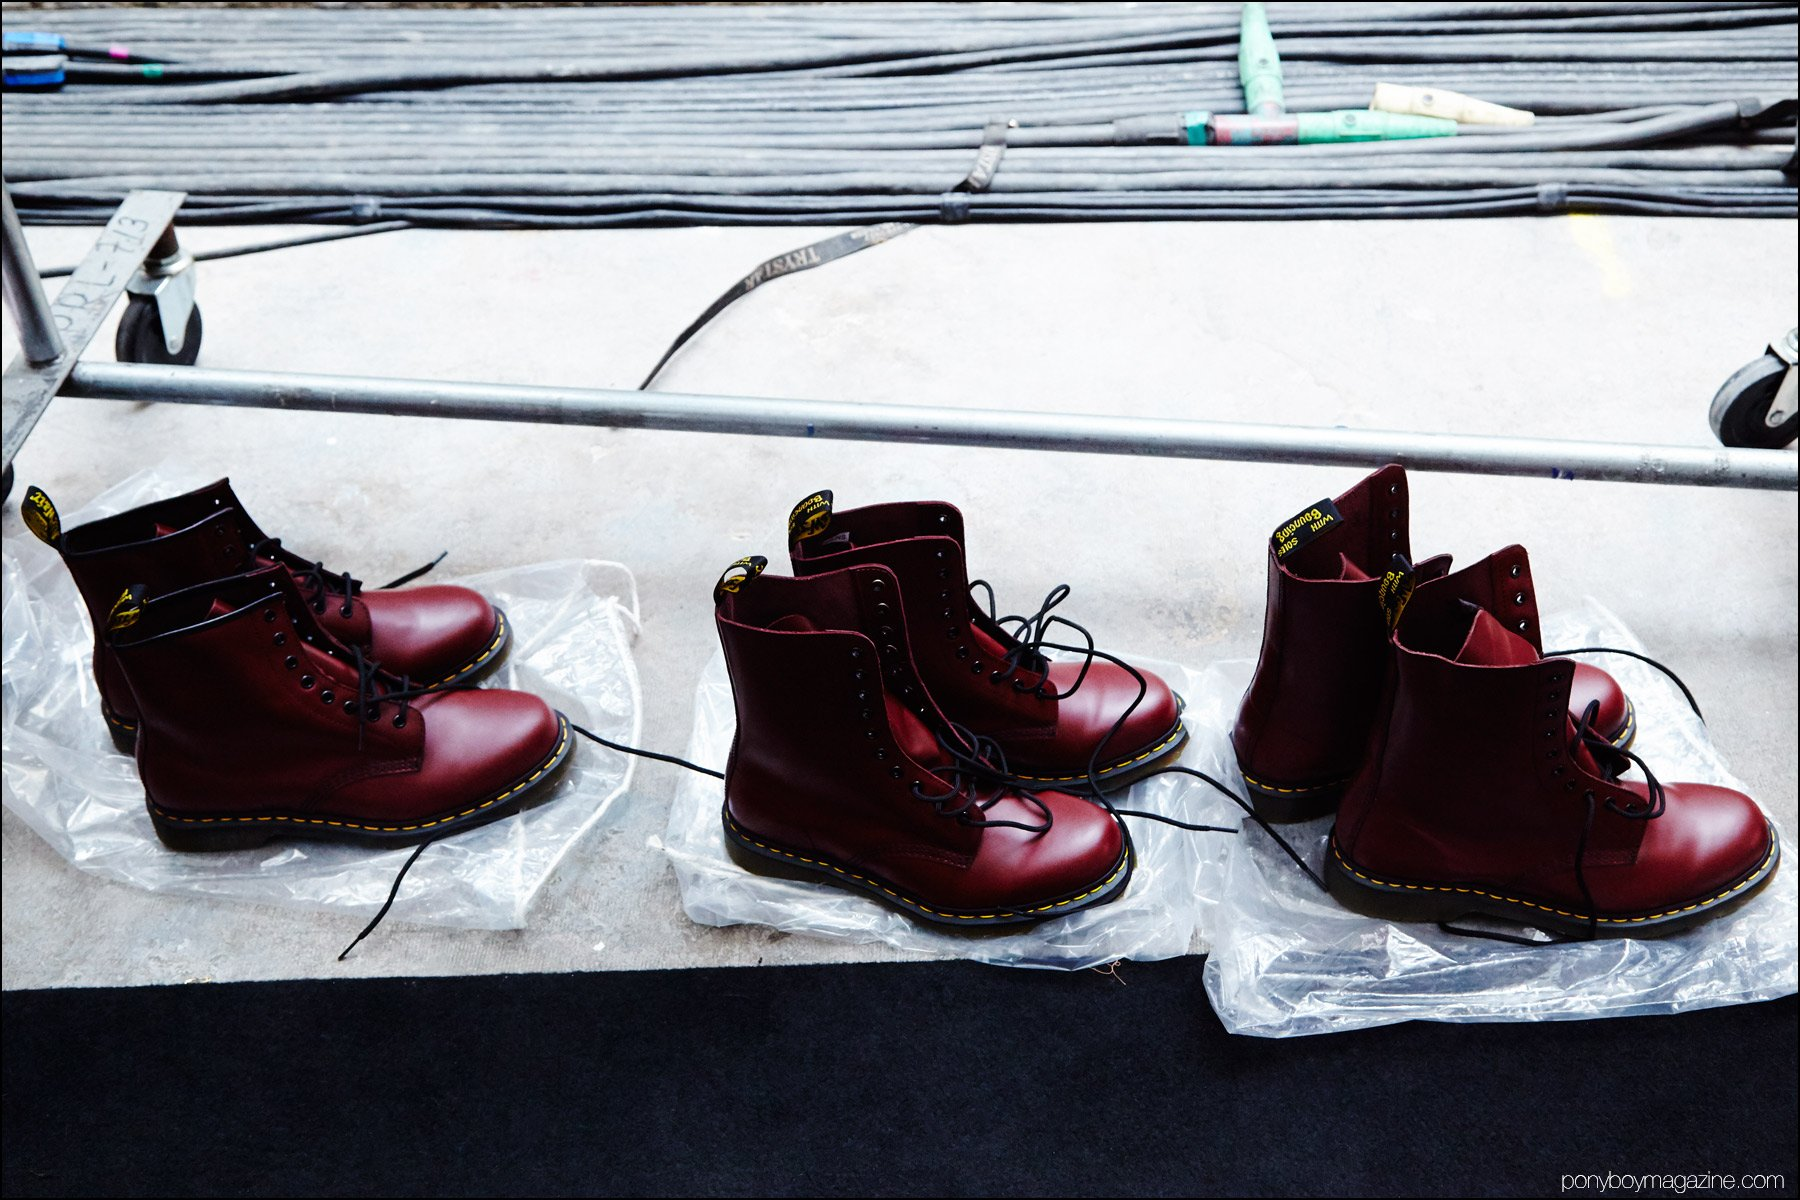 Red Doc Marten combat boots photographed backstage at the Siki Im + Den Im F/W16 menswear show. Photography by Alexander Thompson for Ponyboy magazine NY.